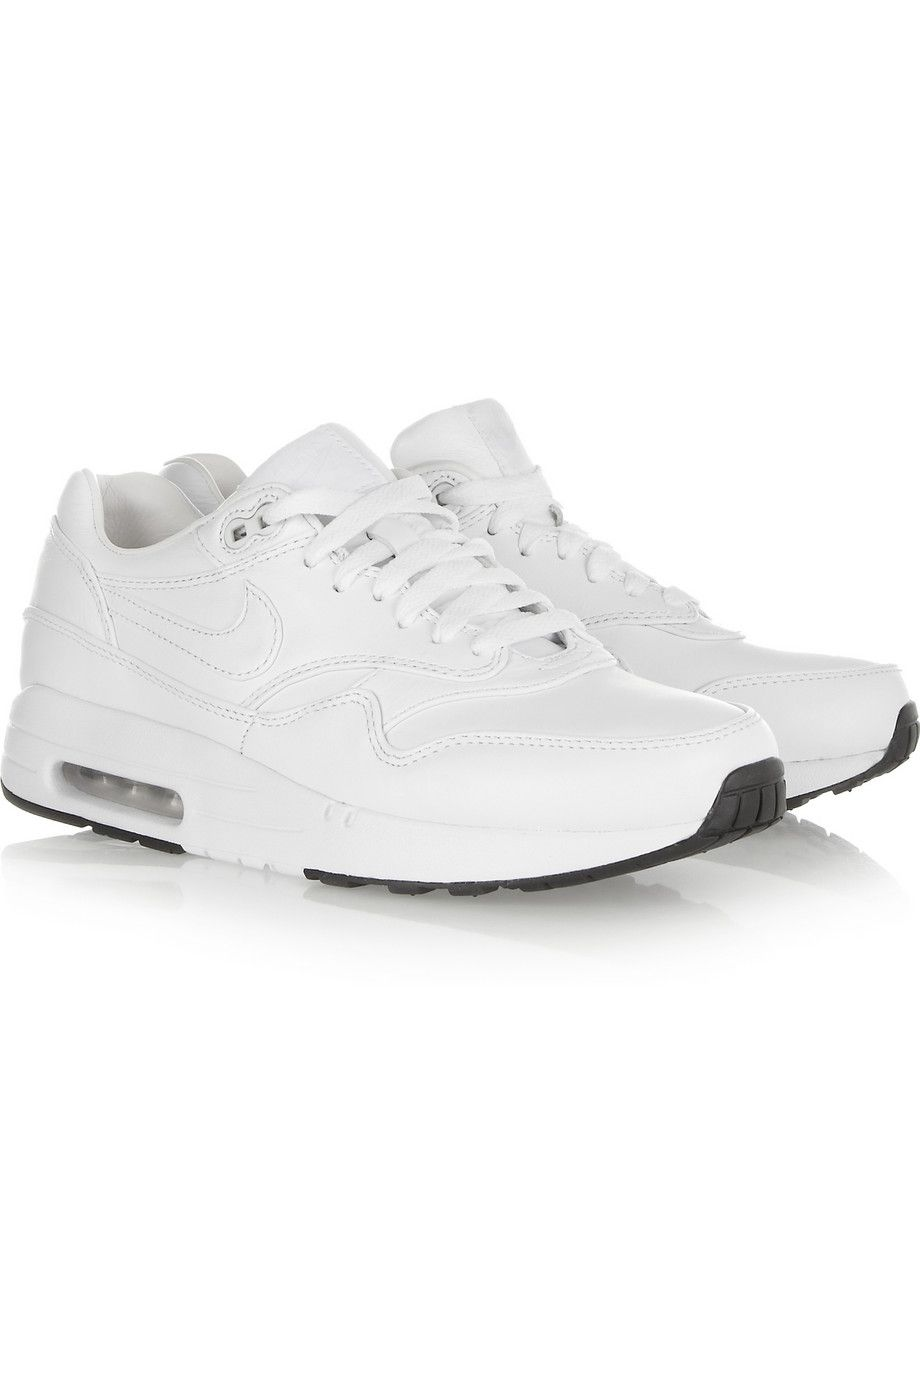 All white Nike Air Max leather sneakers | NET-A-PORTER.COM